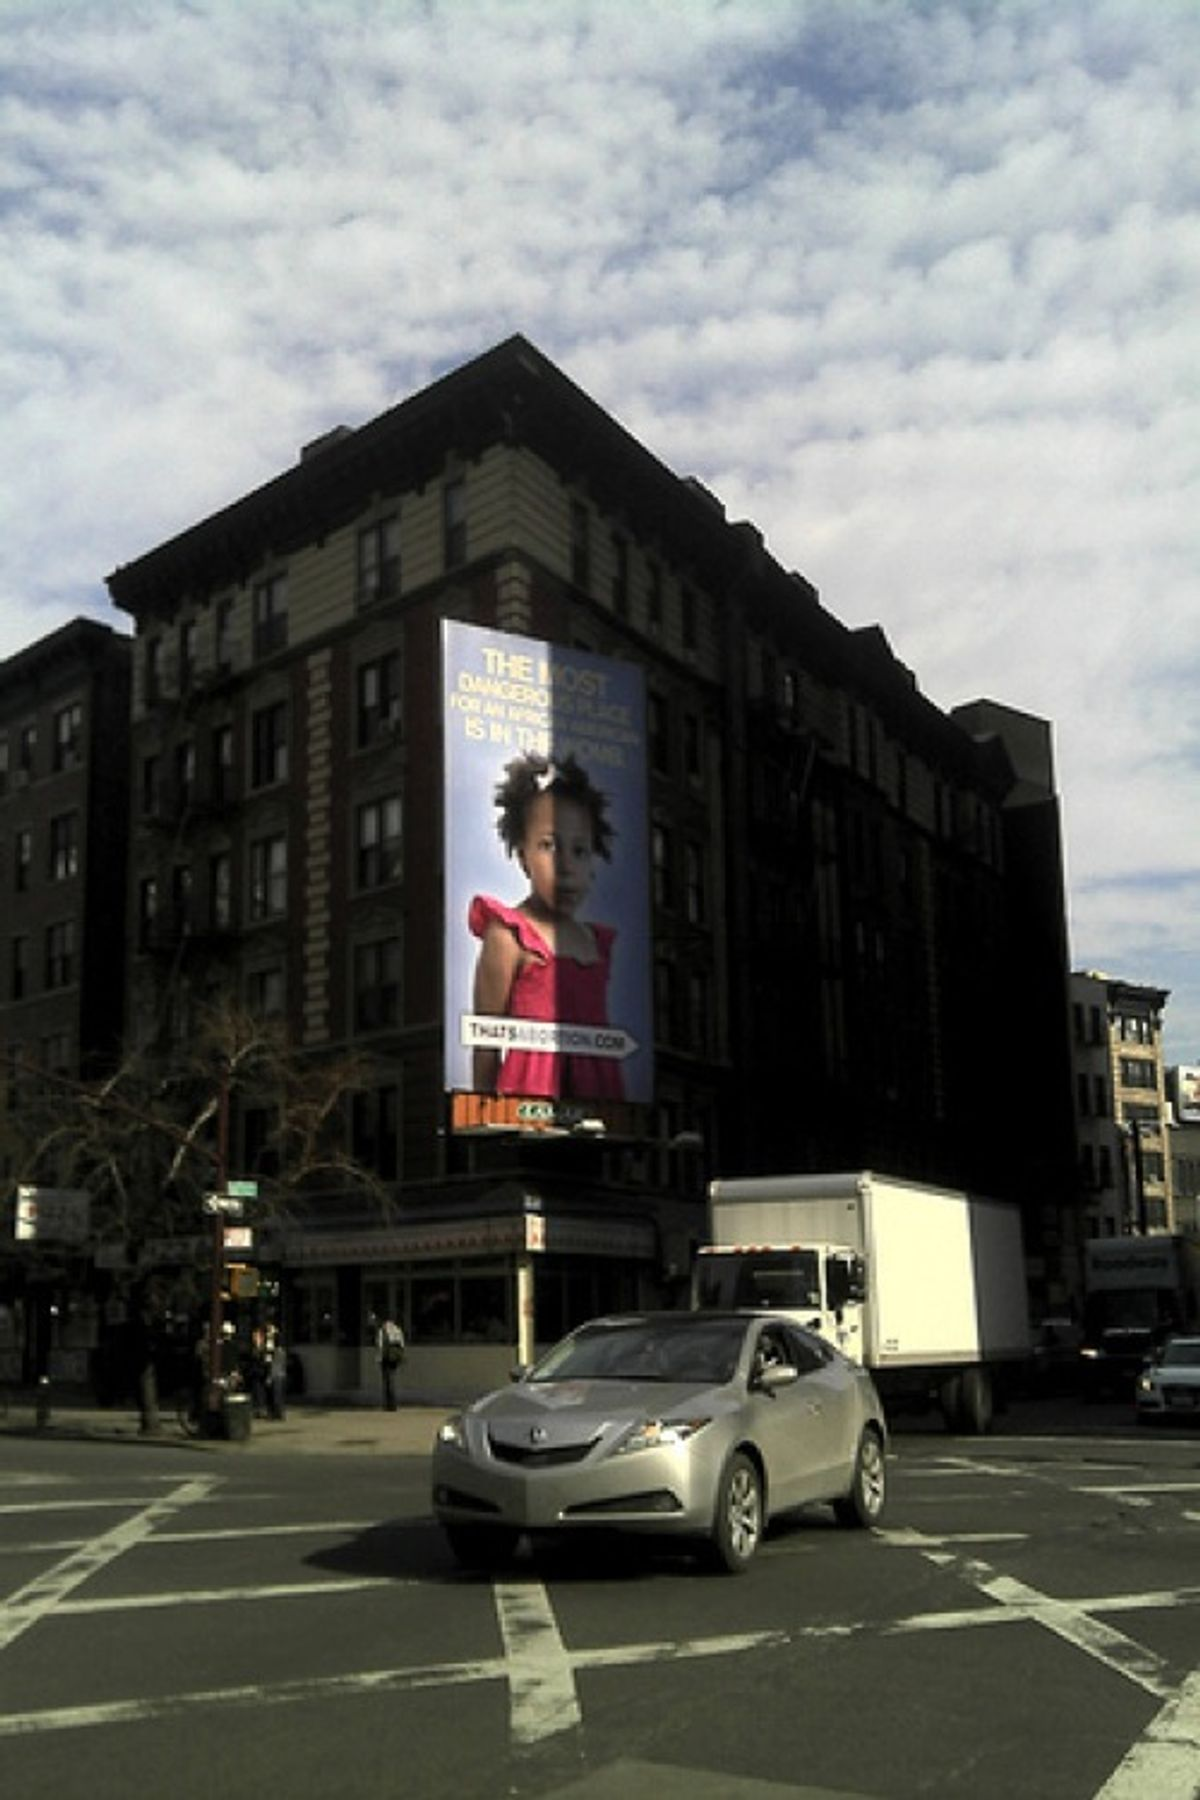 The anti-abortion billboard stands at the corner of 6th street in SoHo